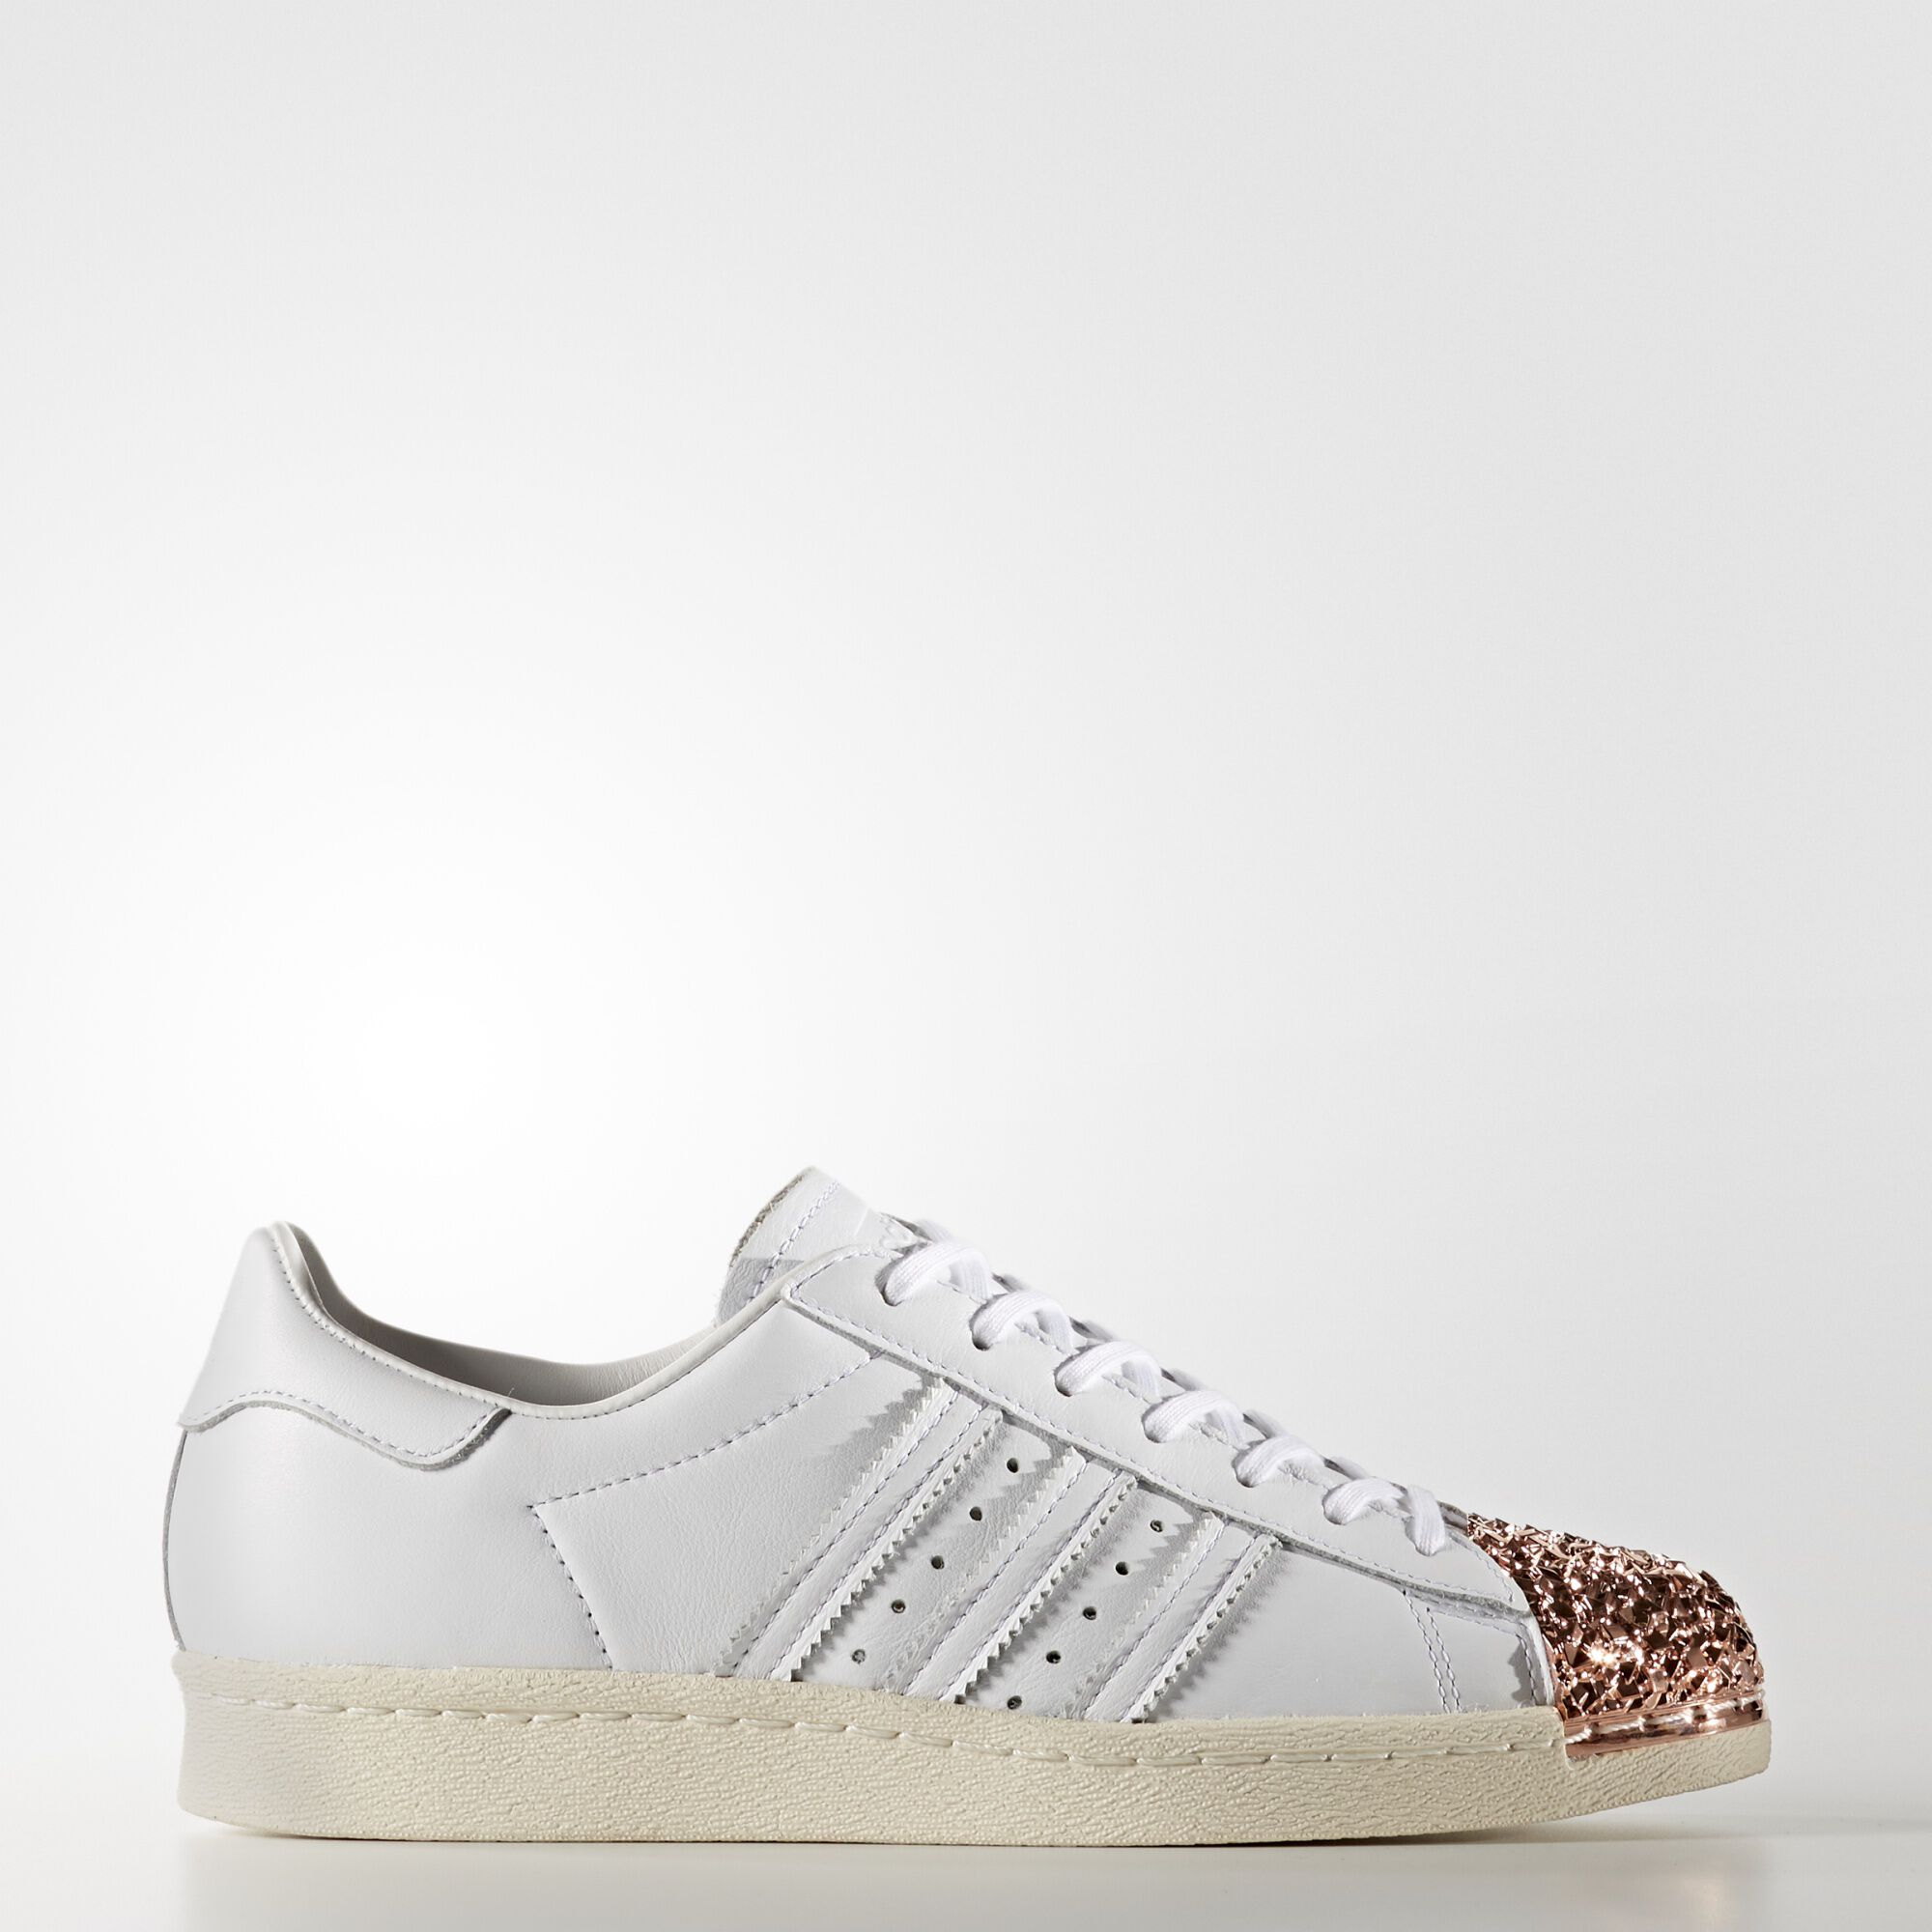 image: adidas superstar [11]